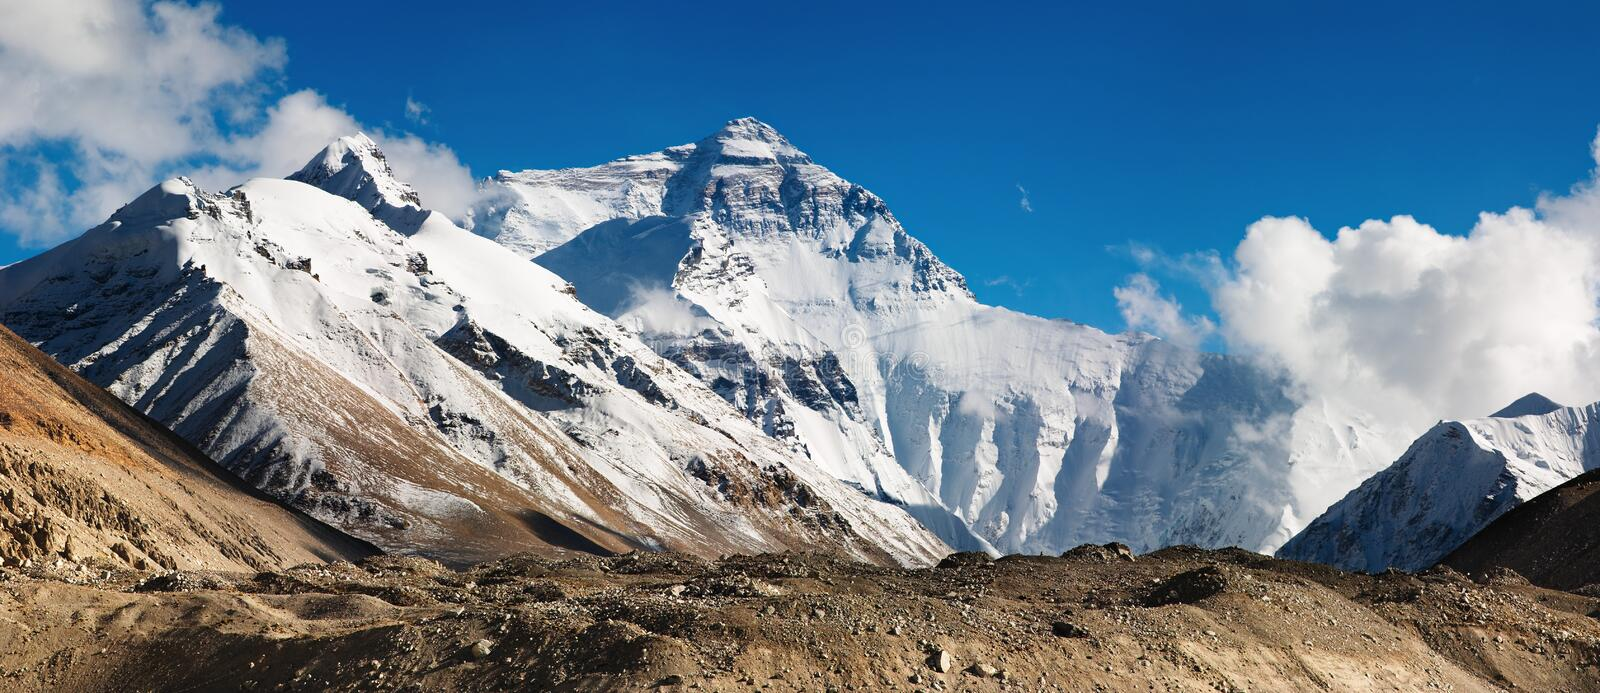 Mount Everest. North Face, view from tibetan base camp royalty free stock image